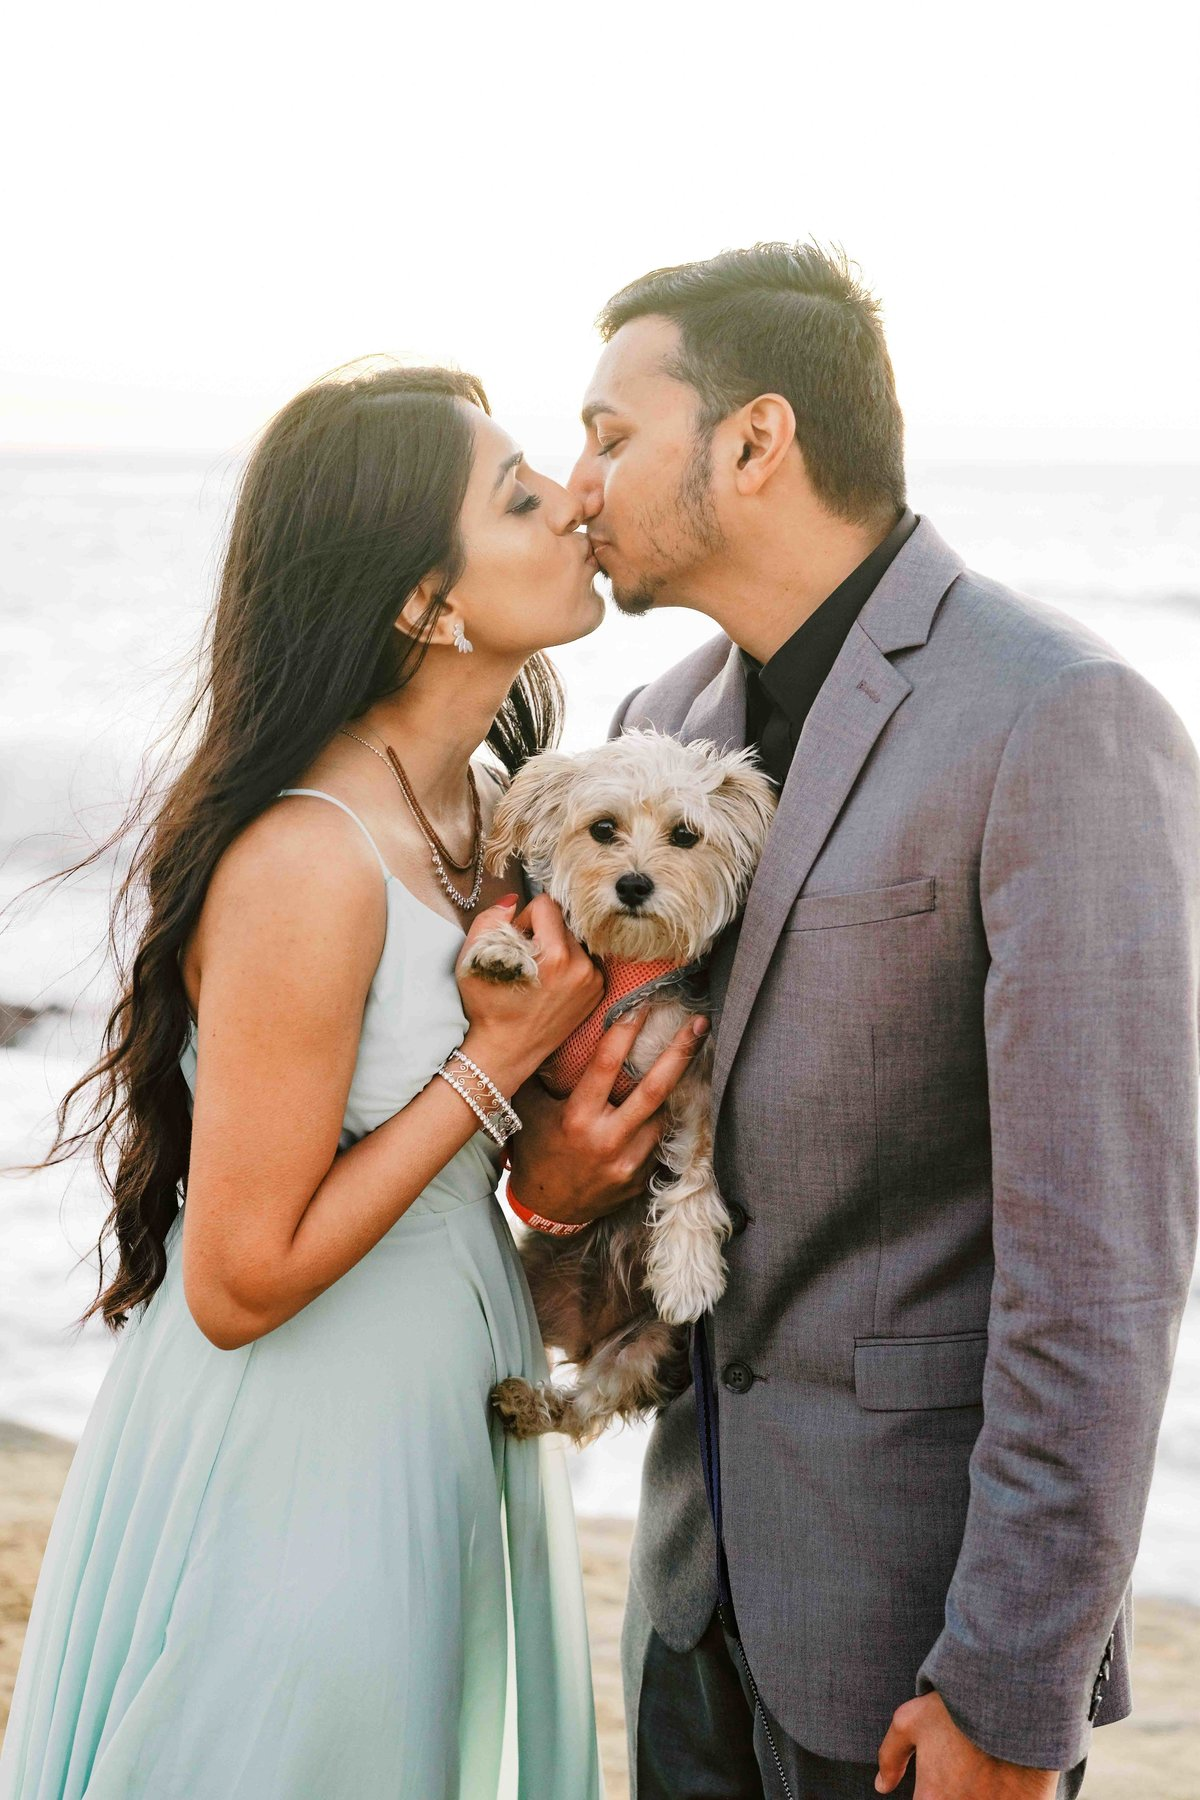 Babsie-Ly-Photography-San-Diego-Proposal-Engagement-Sunset-Cliffs-Indian-Couple-Dog-Surprise-005